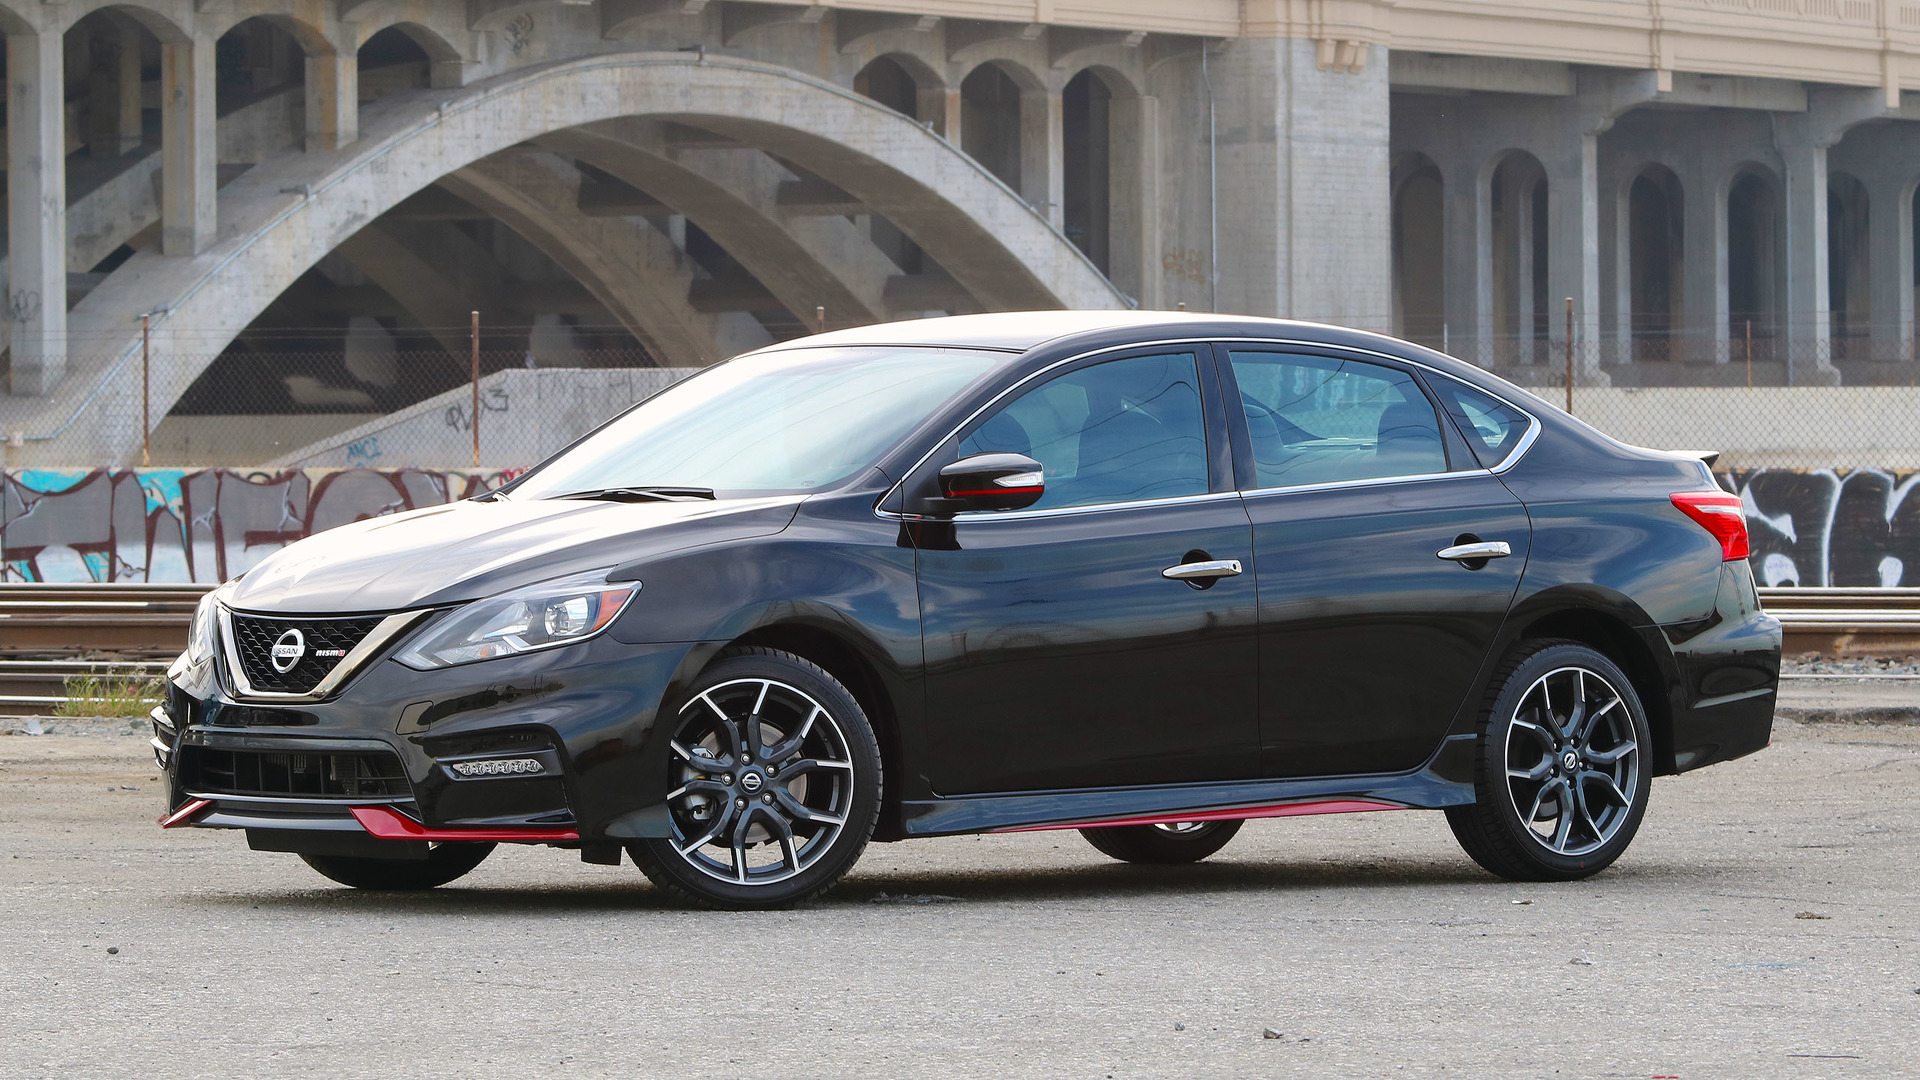 2017 nissan sentra nismo review the one we were waiting for. Black Bedroom Furniture Sets. Home Design Ideas